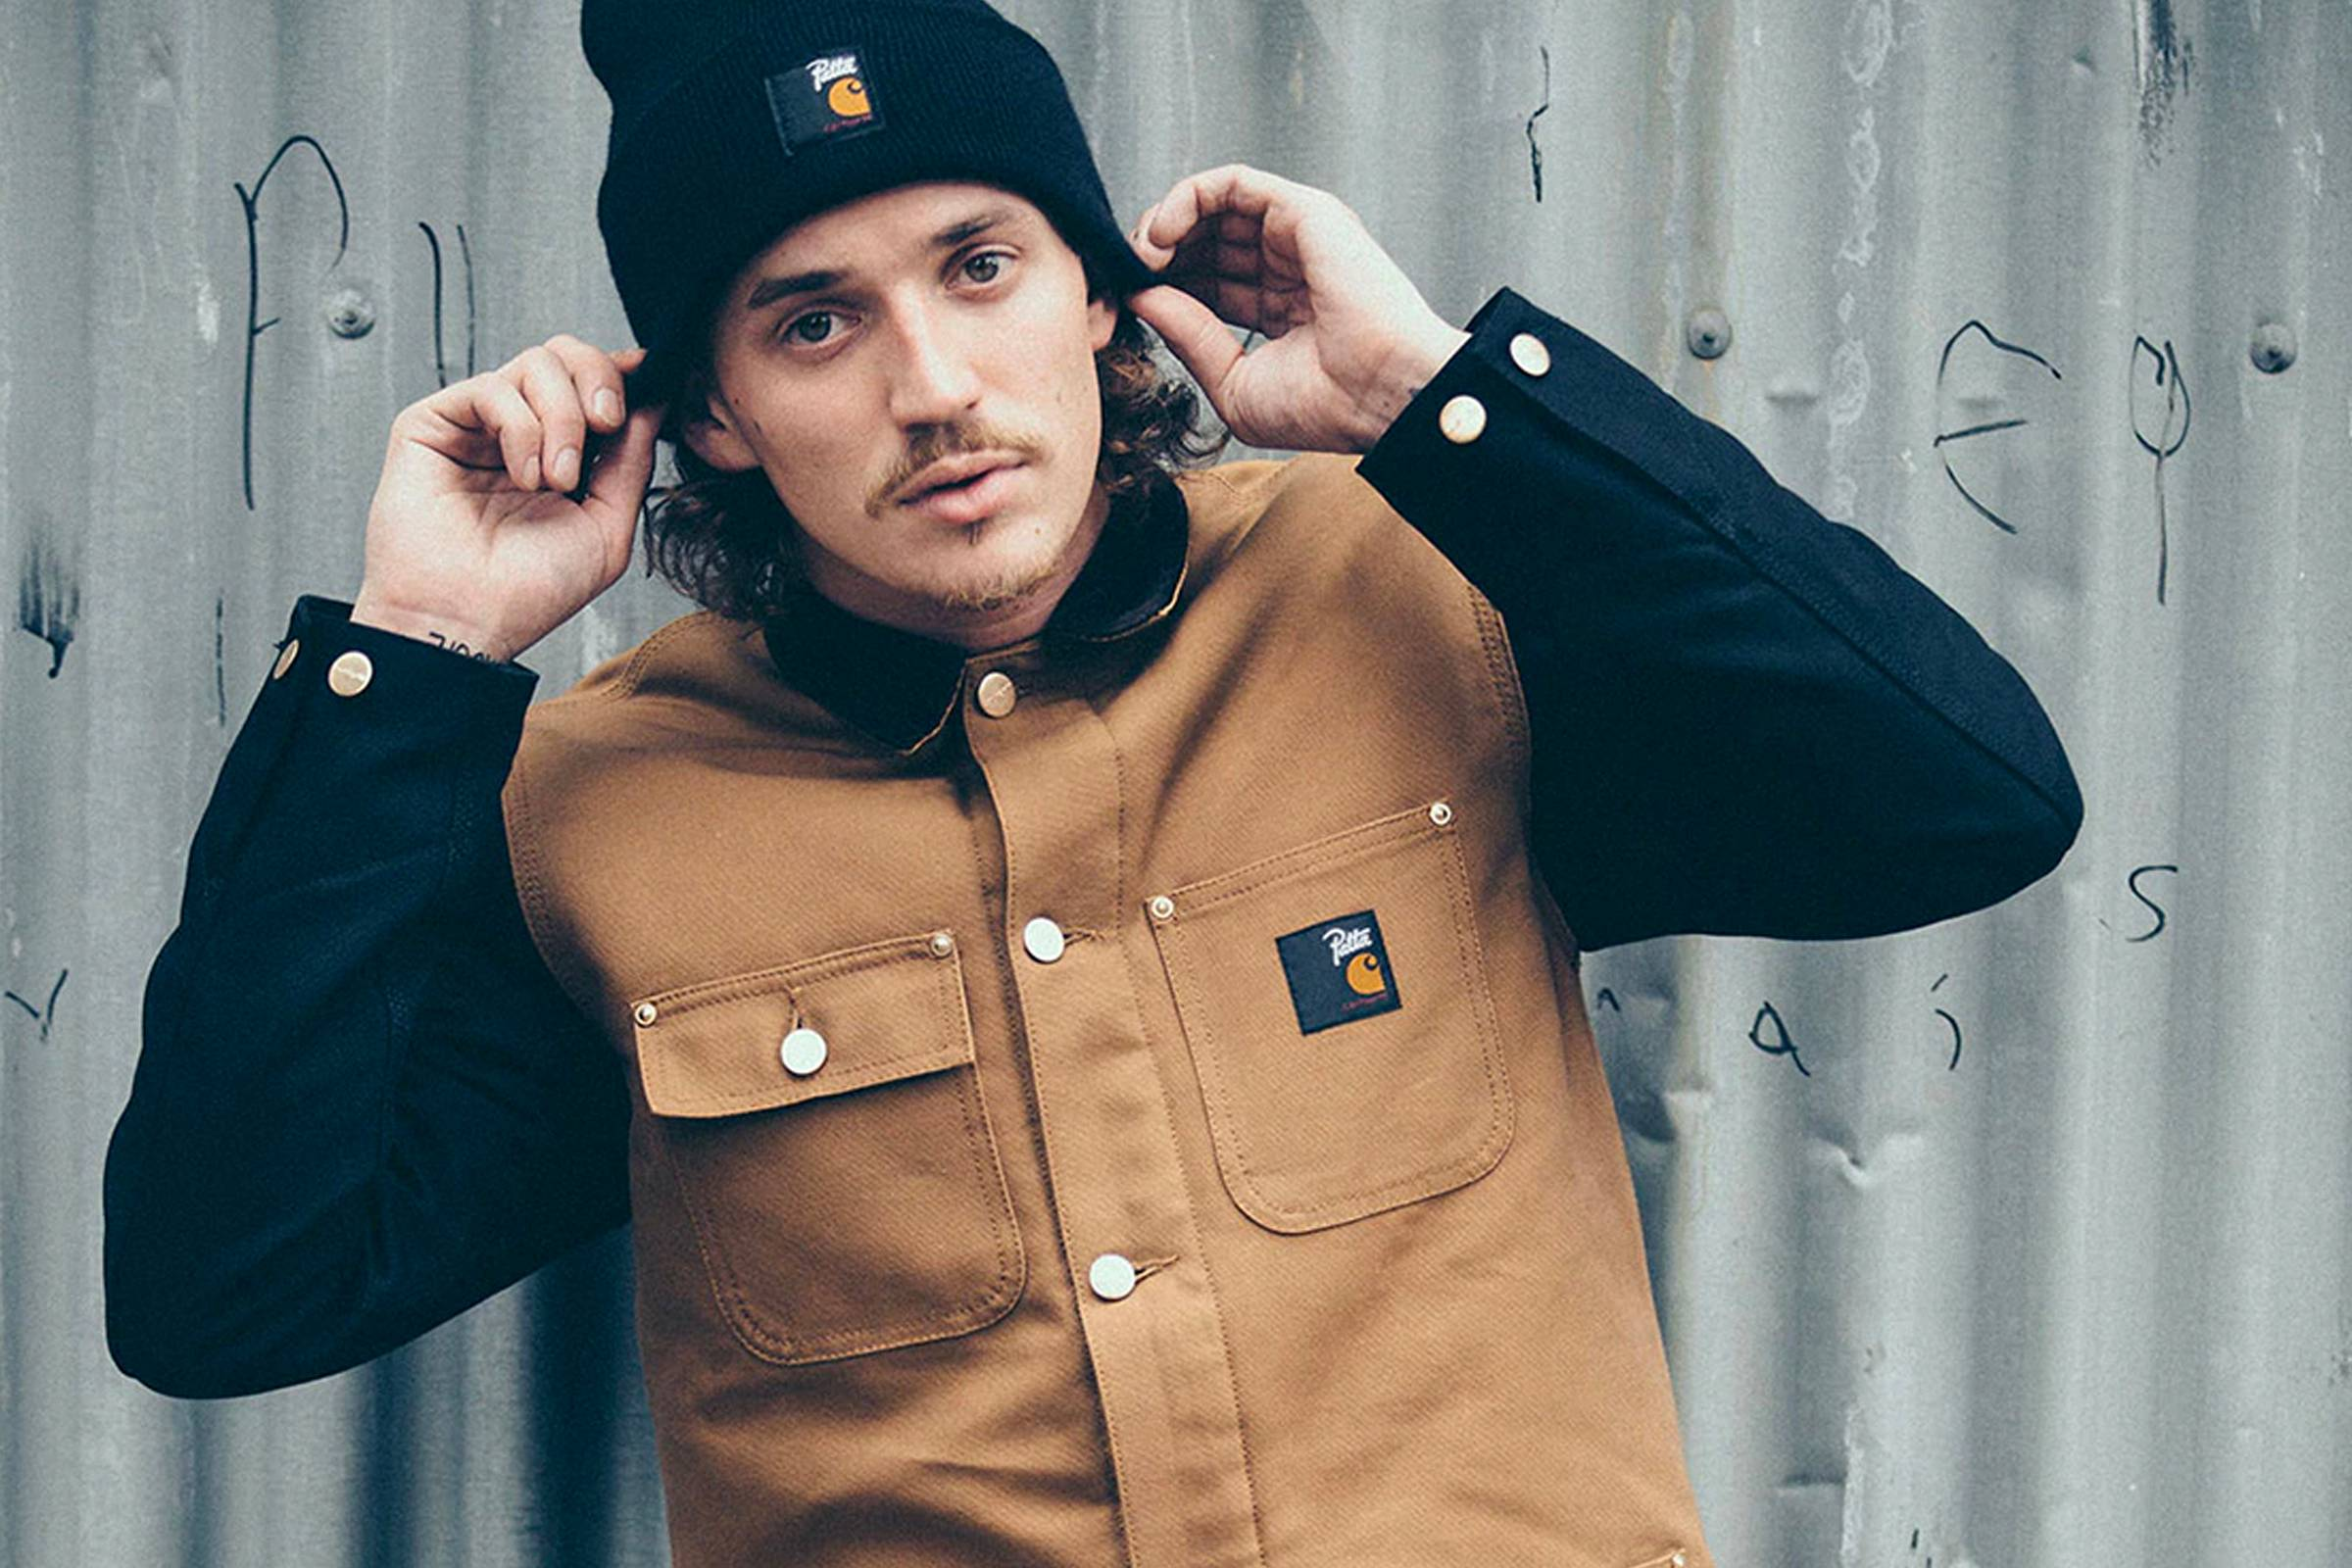 Carhartt W.I.P. x Patta Fall/Winter 2014 (and Fall/Winter 2016)